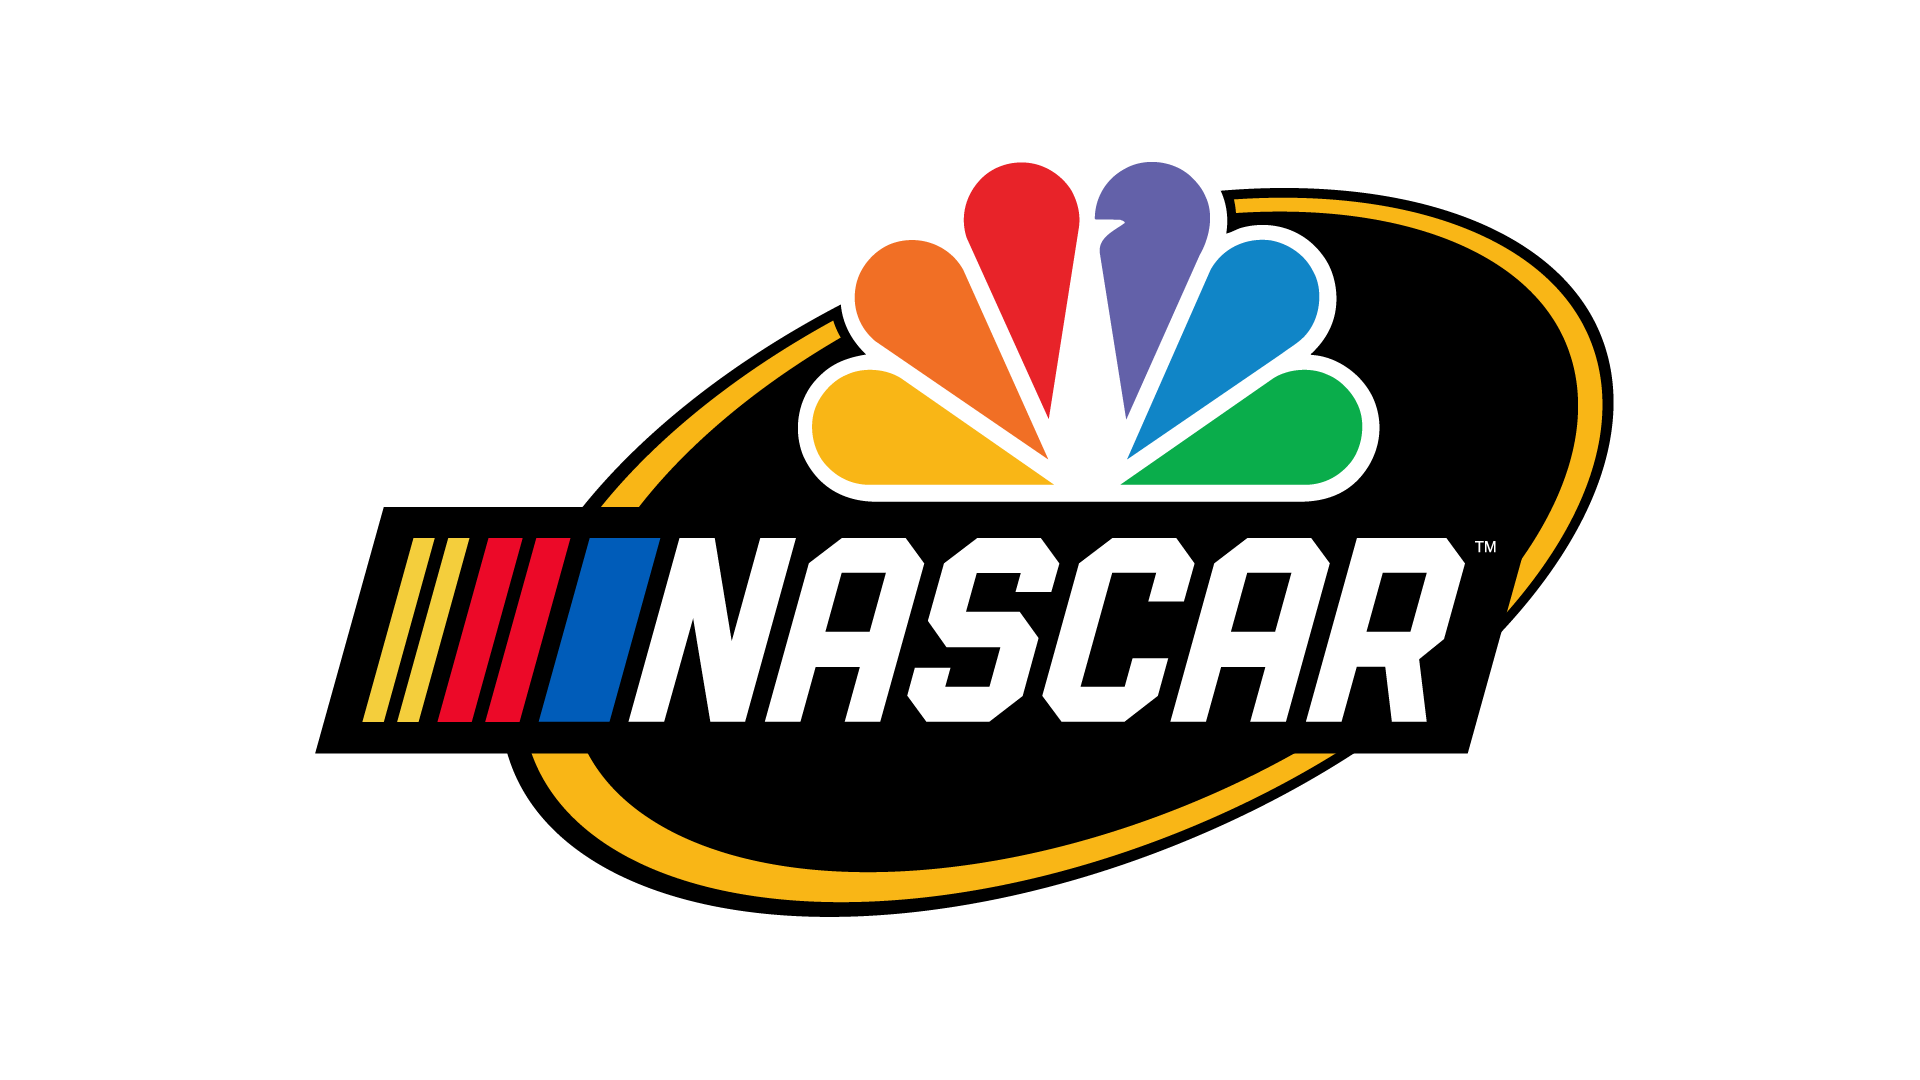 nascar on nbc stock car racing wiki fandom powered by wikia rh stockcarracing wikia com new nascar logo images